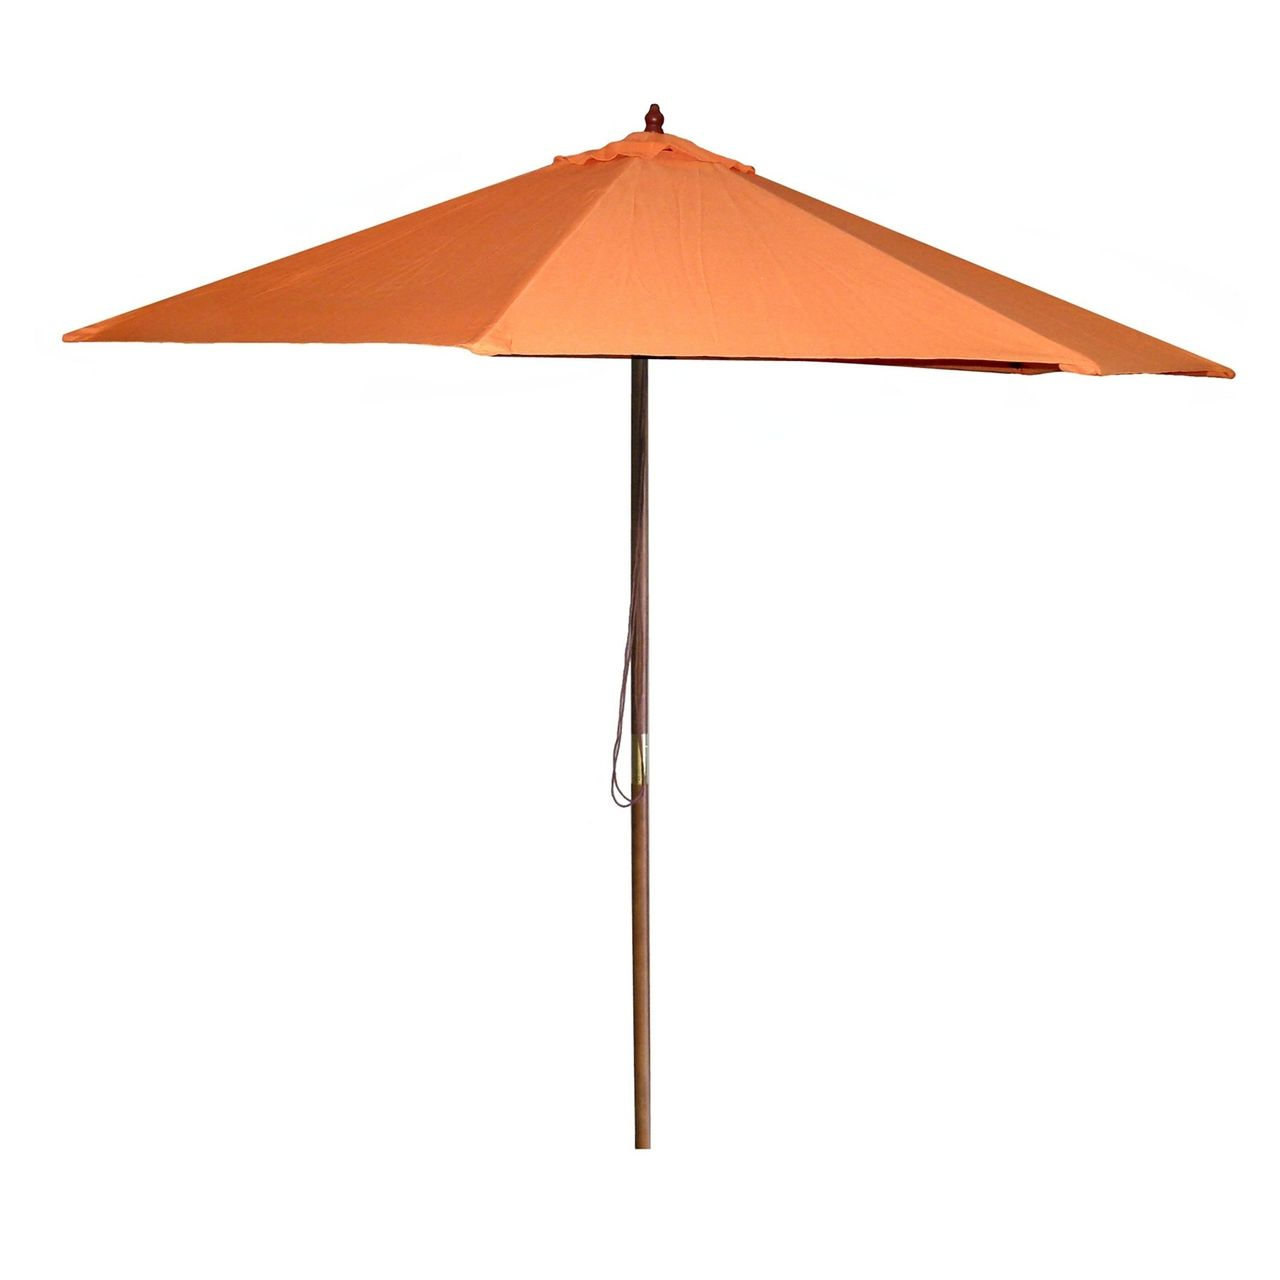 Current 9 Ft Patio Pulley Umbrella With Wood Pole And Orange Canopy Intended For Devansh Market Umbrellas (View 5 of 20)